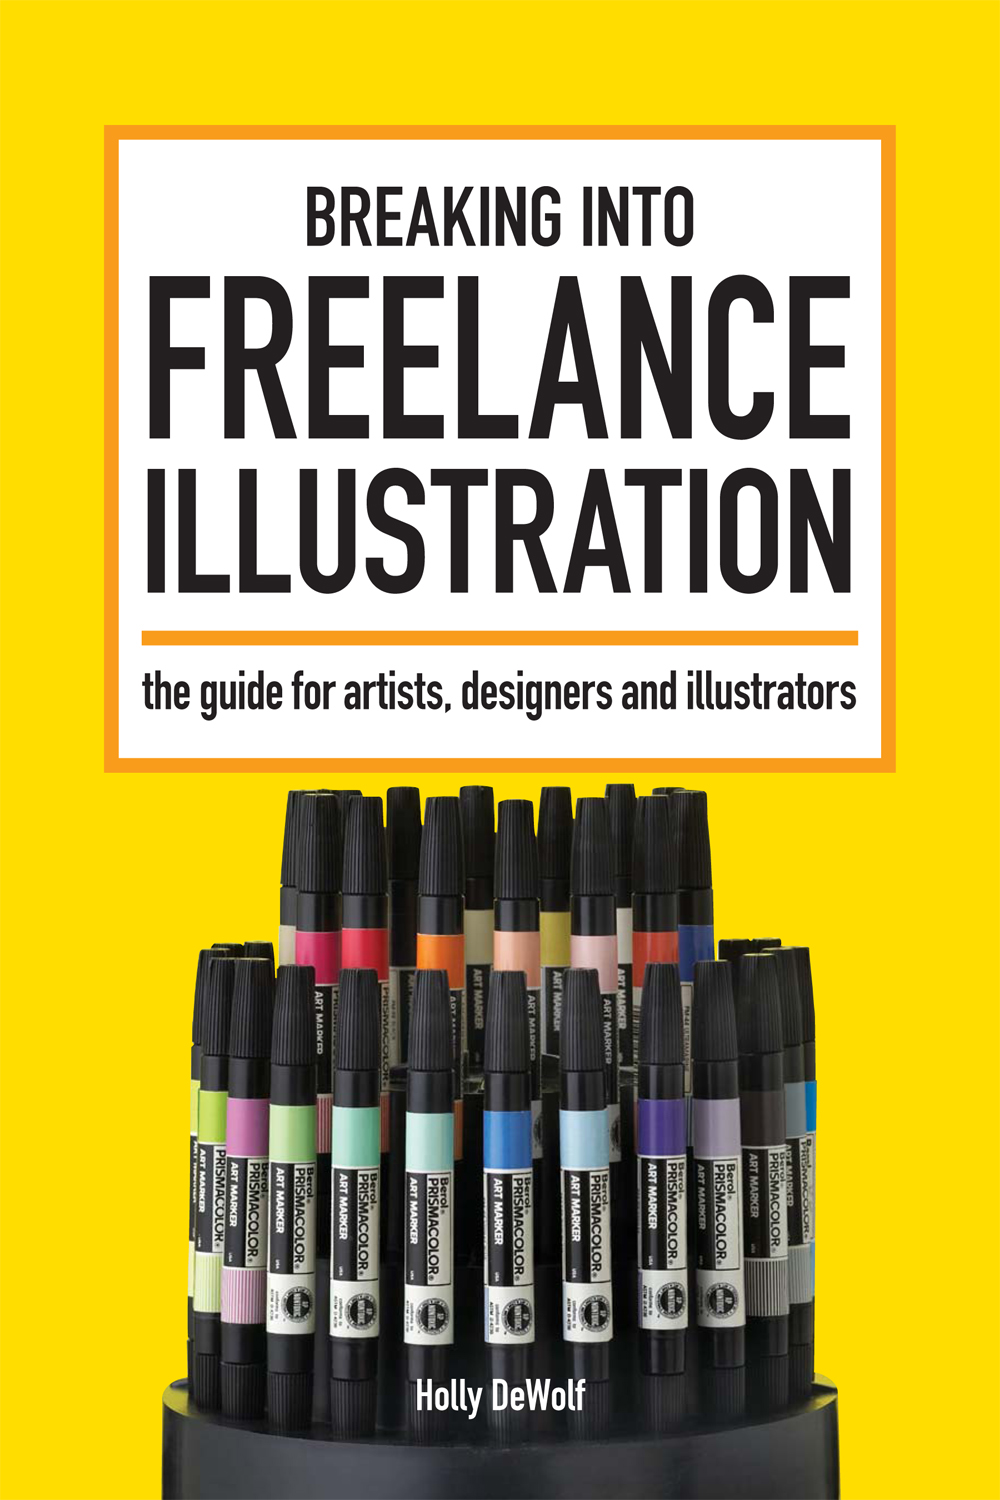 Breaking Into Freelance Illustration A Guide for Artists,  Designers and Illustrators